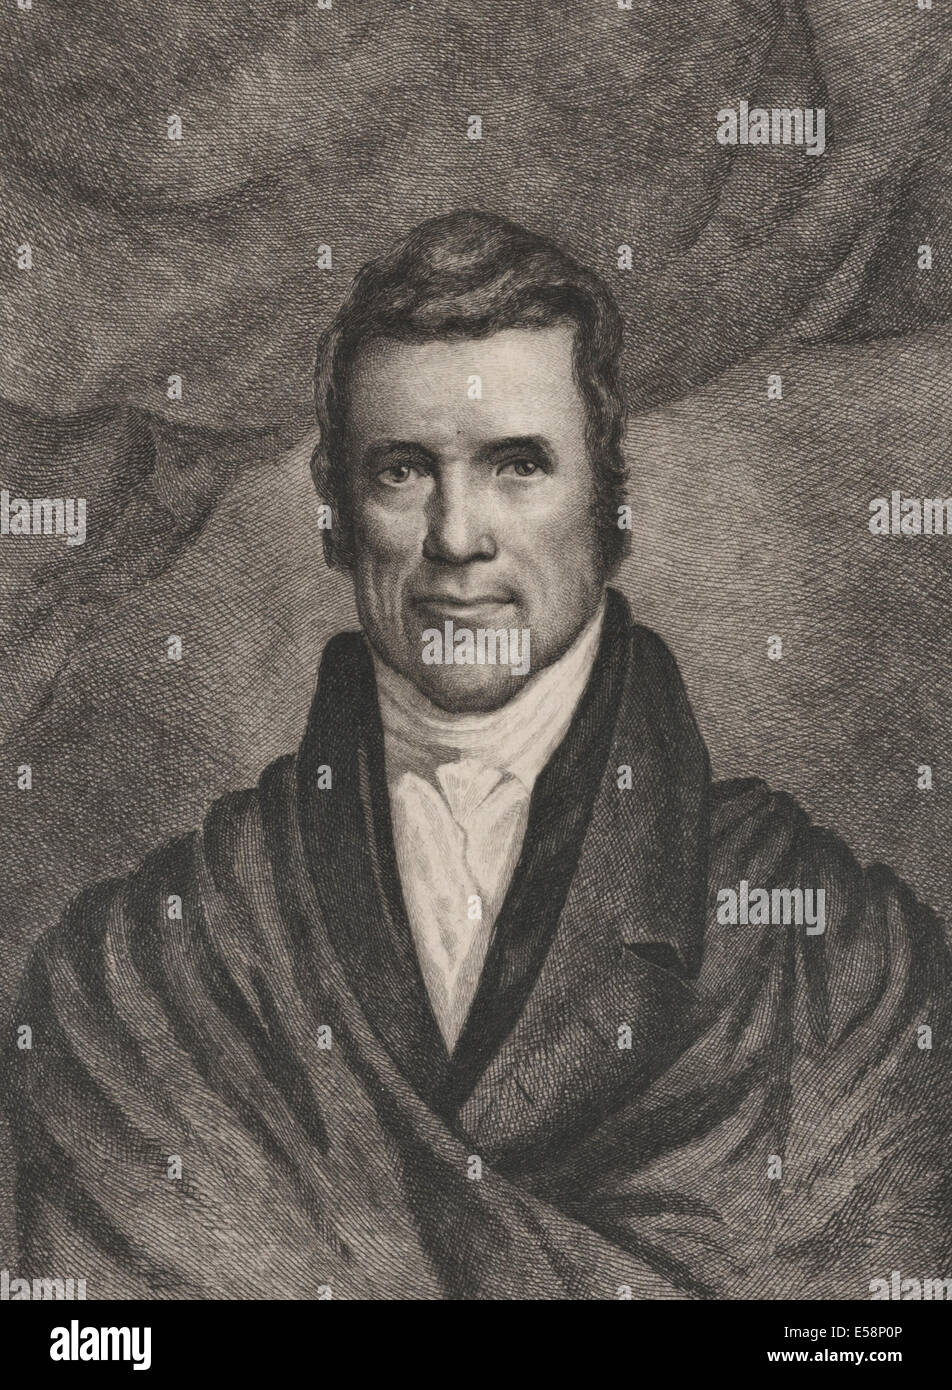 Chief Justice John Marshall, Chief Justice of the USA Supreme Court 1801-1835 Stock Photo